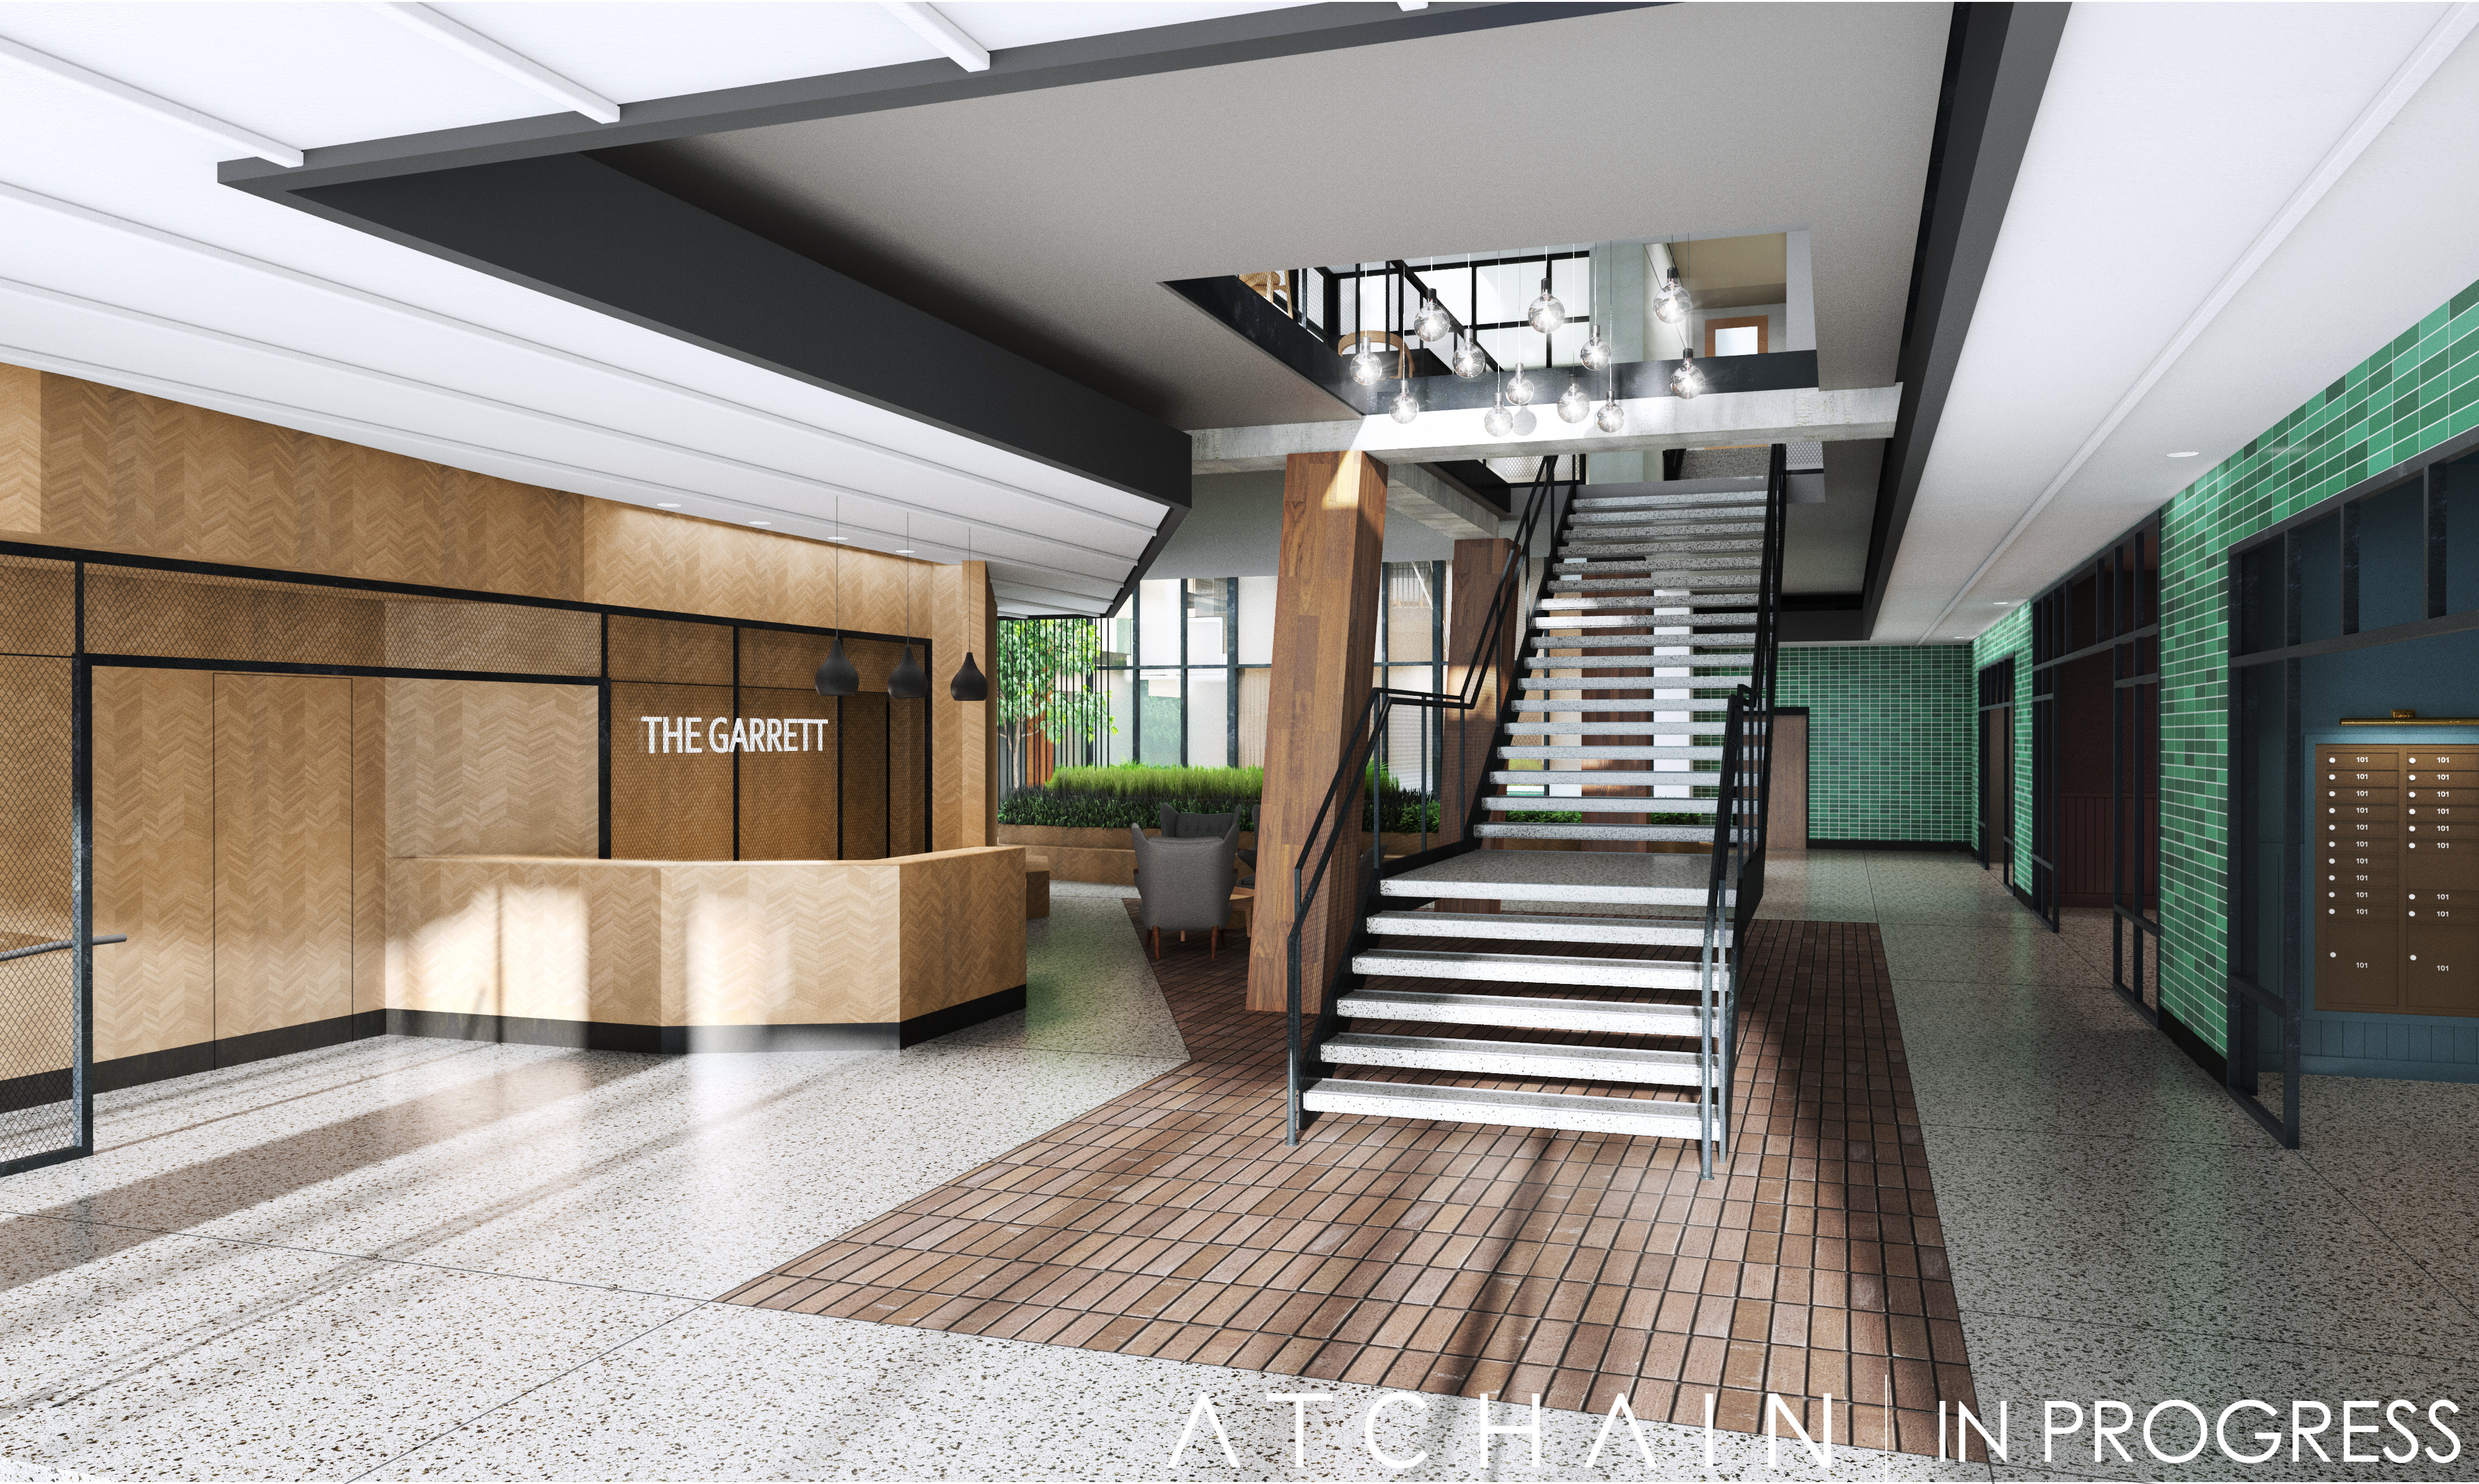 The Garrett at The Collective Lobby Rendering